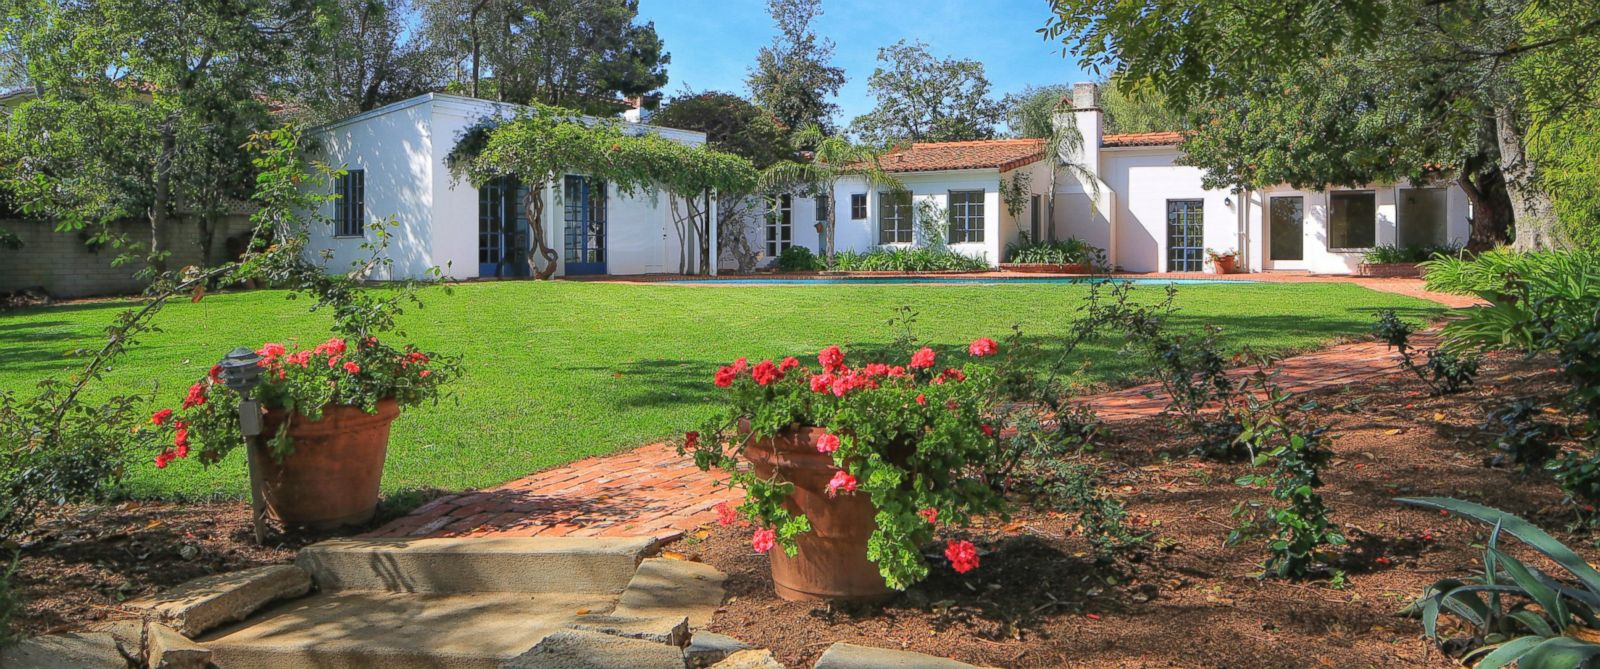 PHOTO: Marilyn Monroes former home in the Brentwood neighborhood of Los Angeles is on the market for $6.9 million.